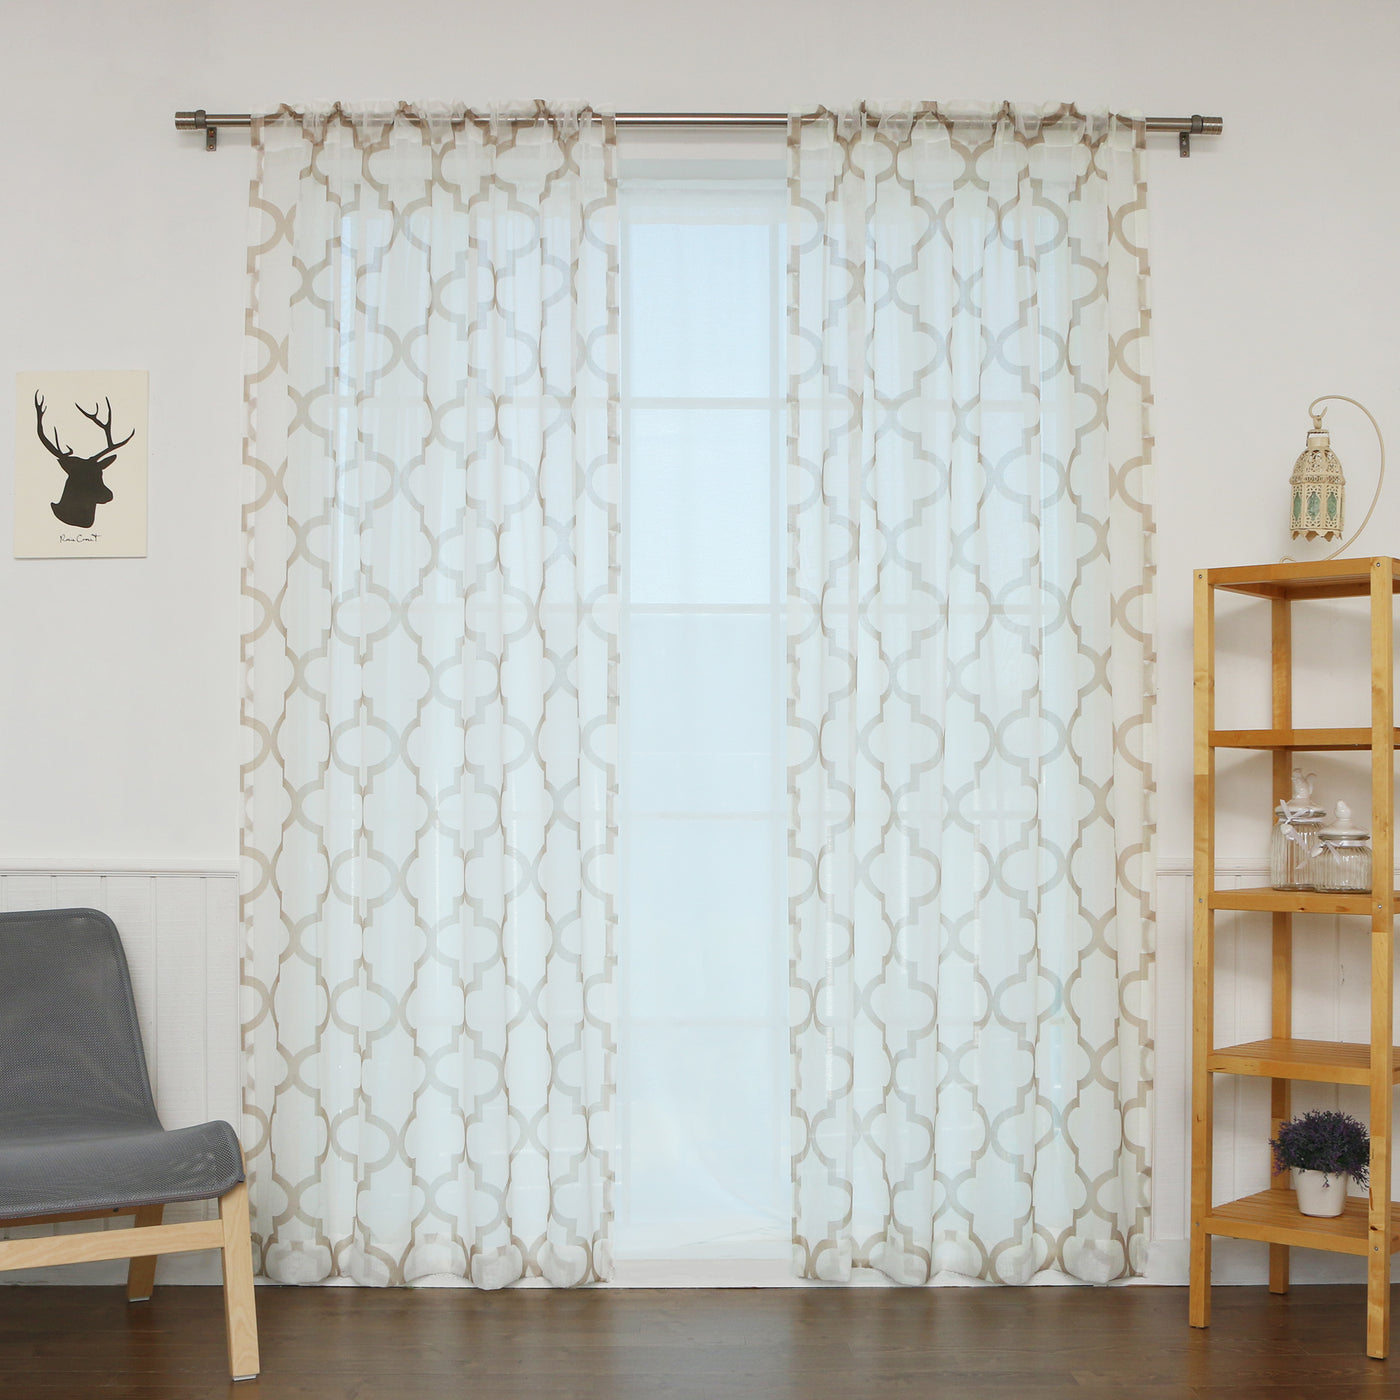 Faux Linen Sheer Reverse Moroccan Curtains